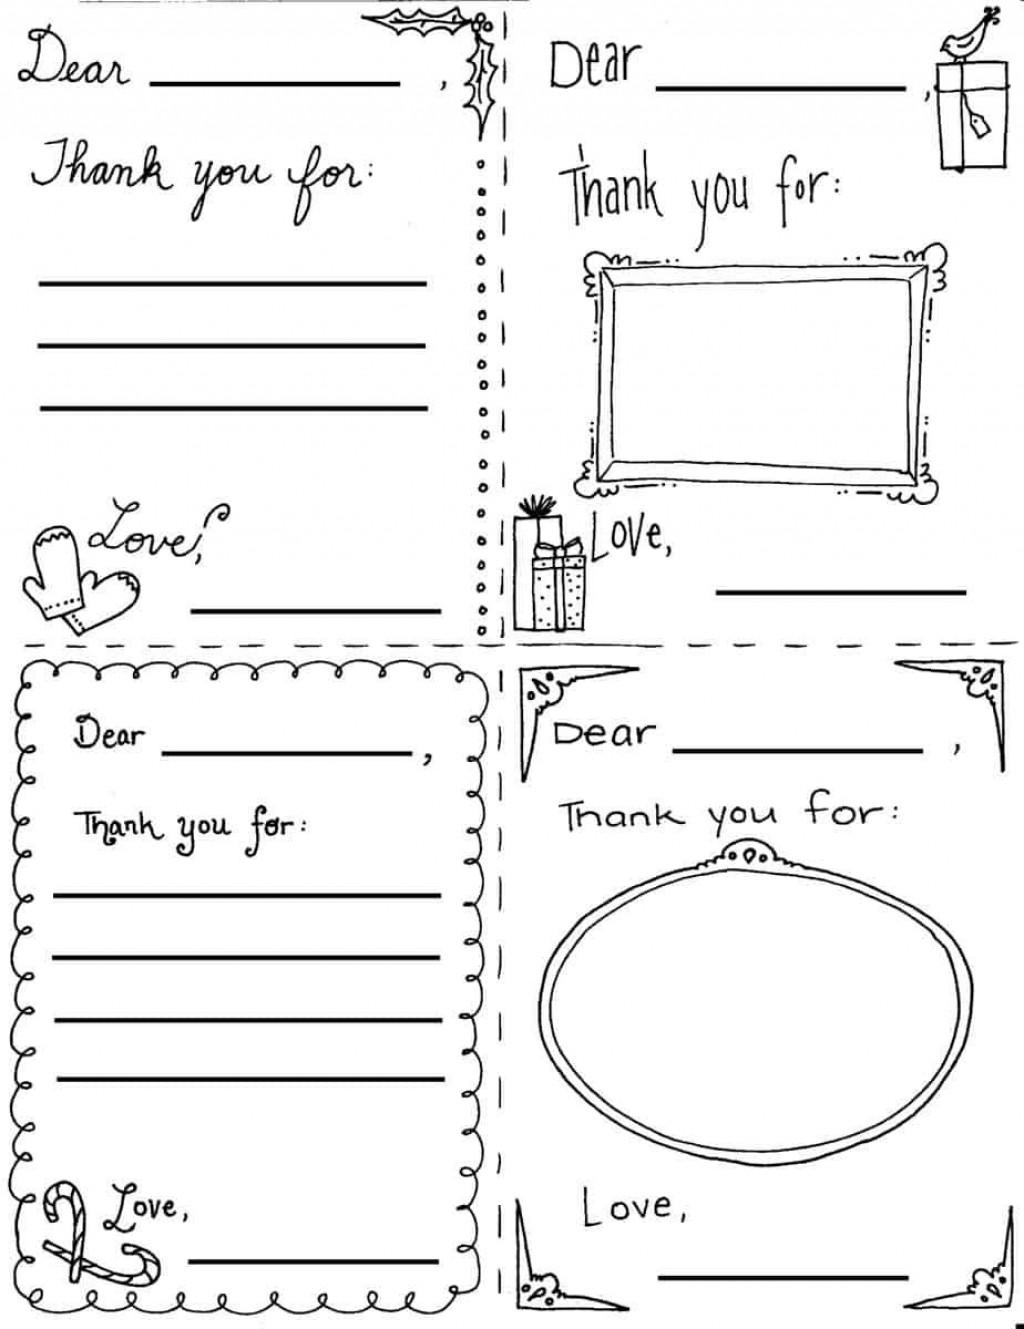 004 Unusual Thank You Note Template Printable Image  Letter Baby Card WordLarge